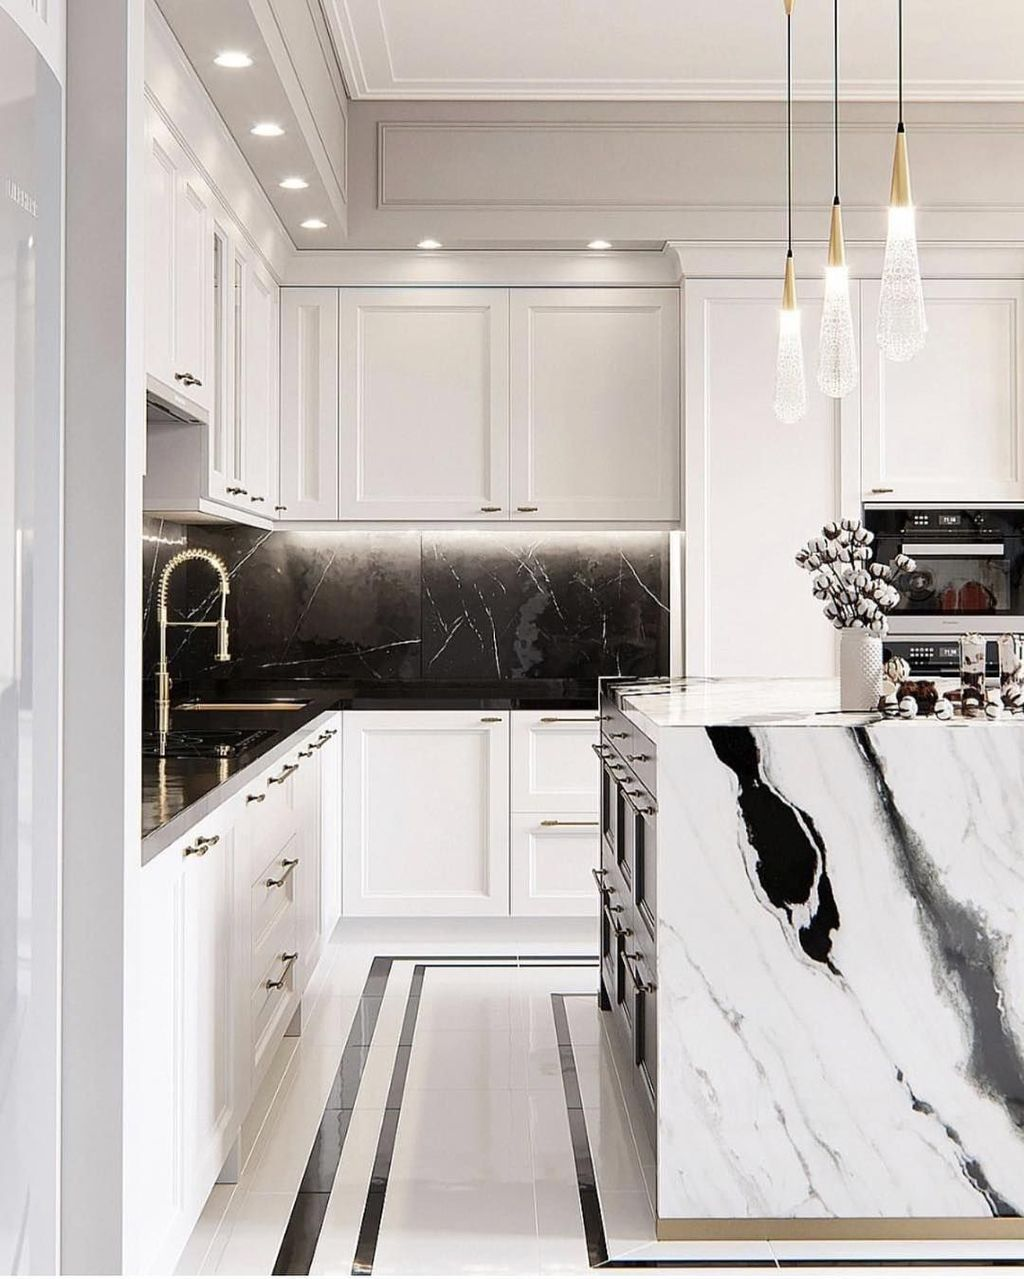 48 Amazing Marble Kitchen Ideas That Give You Luxurious Kitchen #kitchendesigninspiration